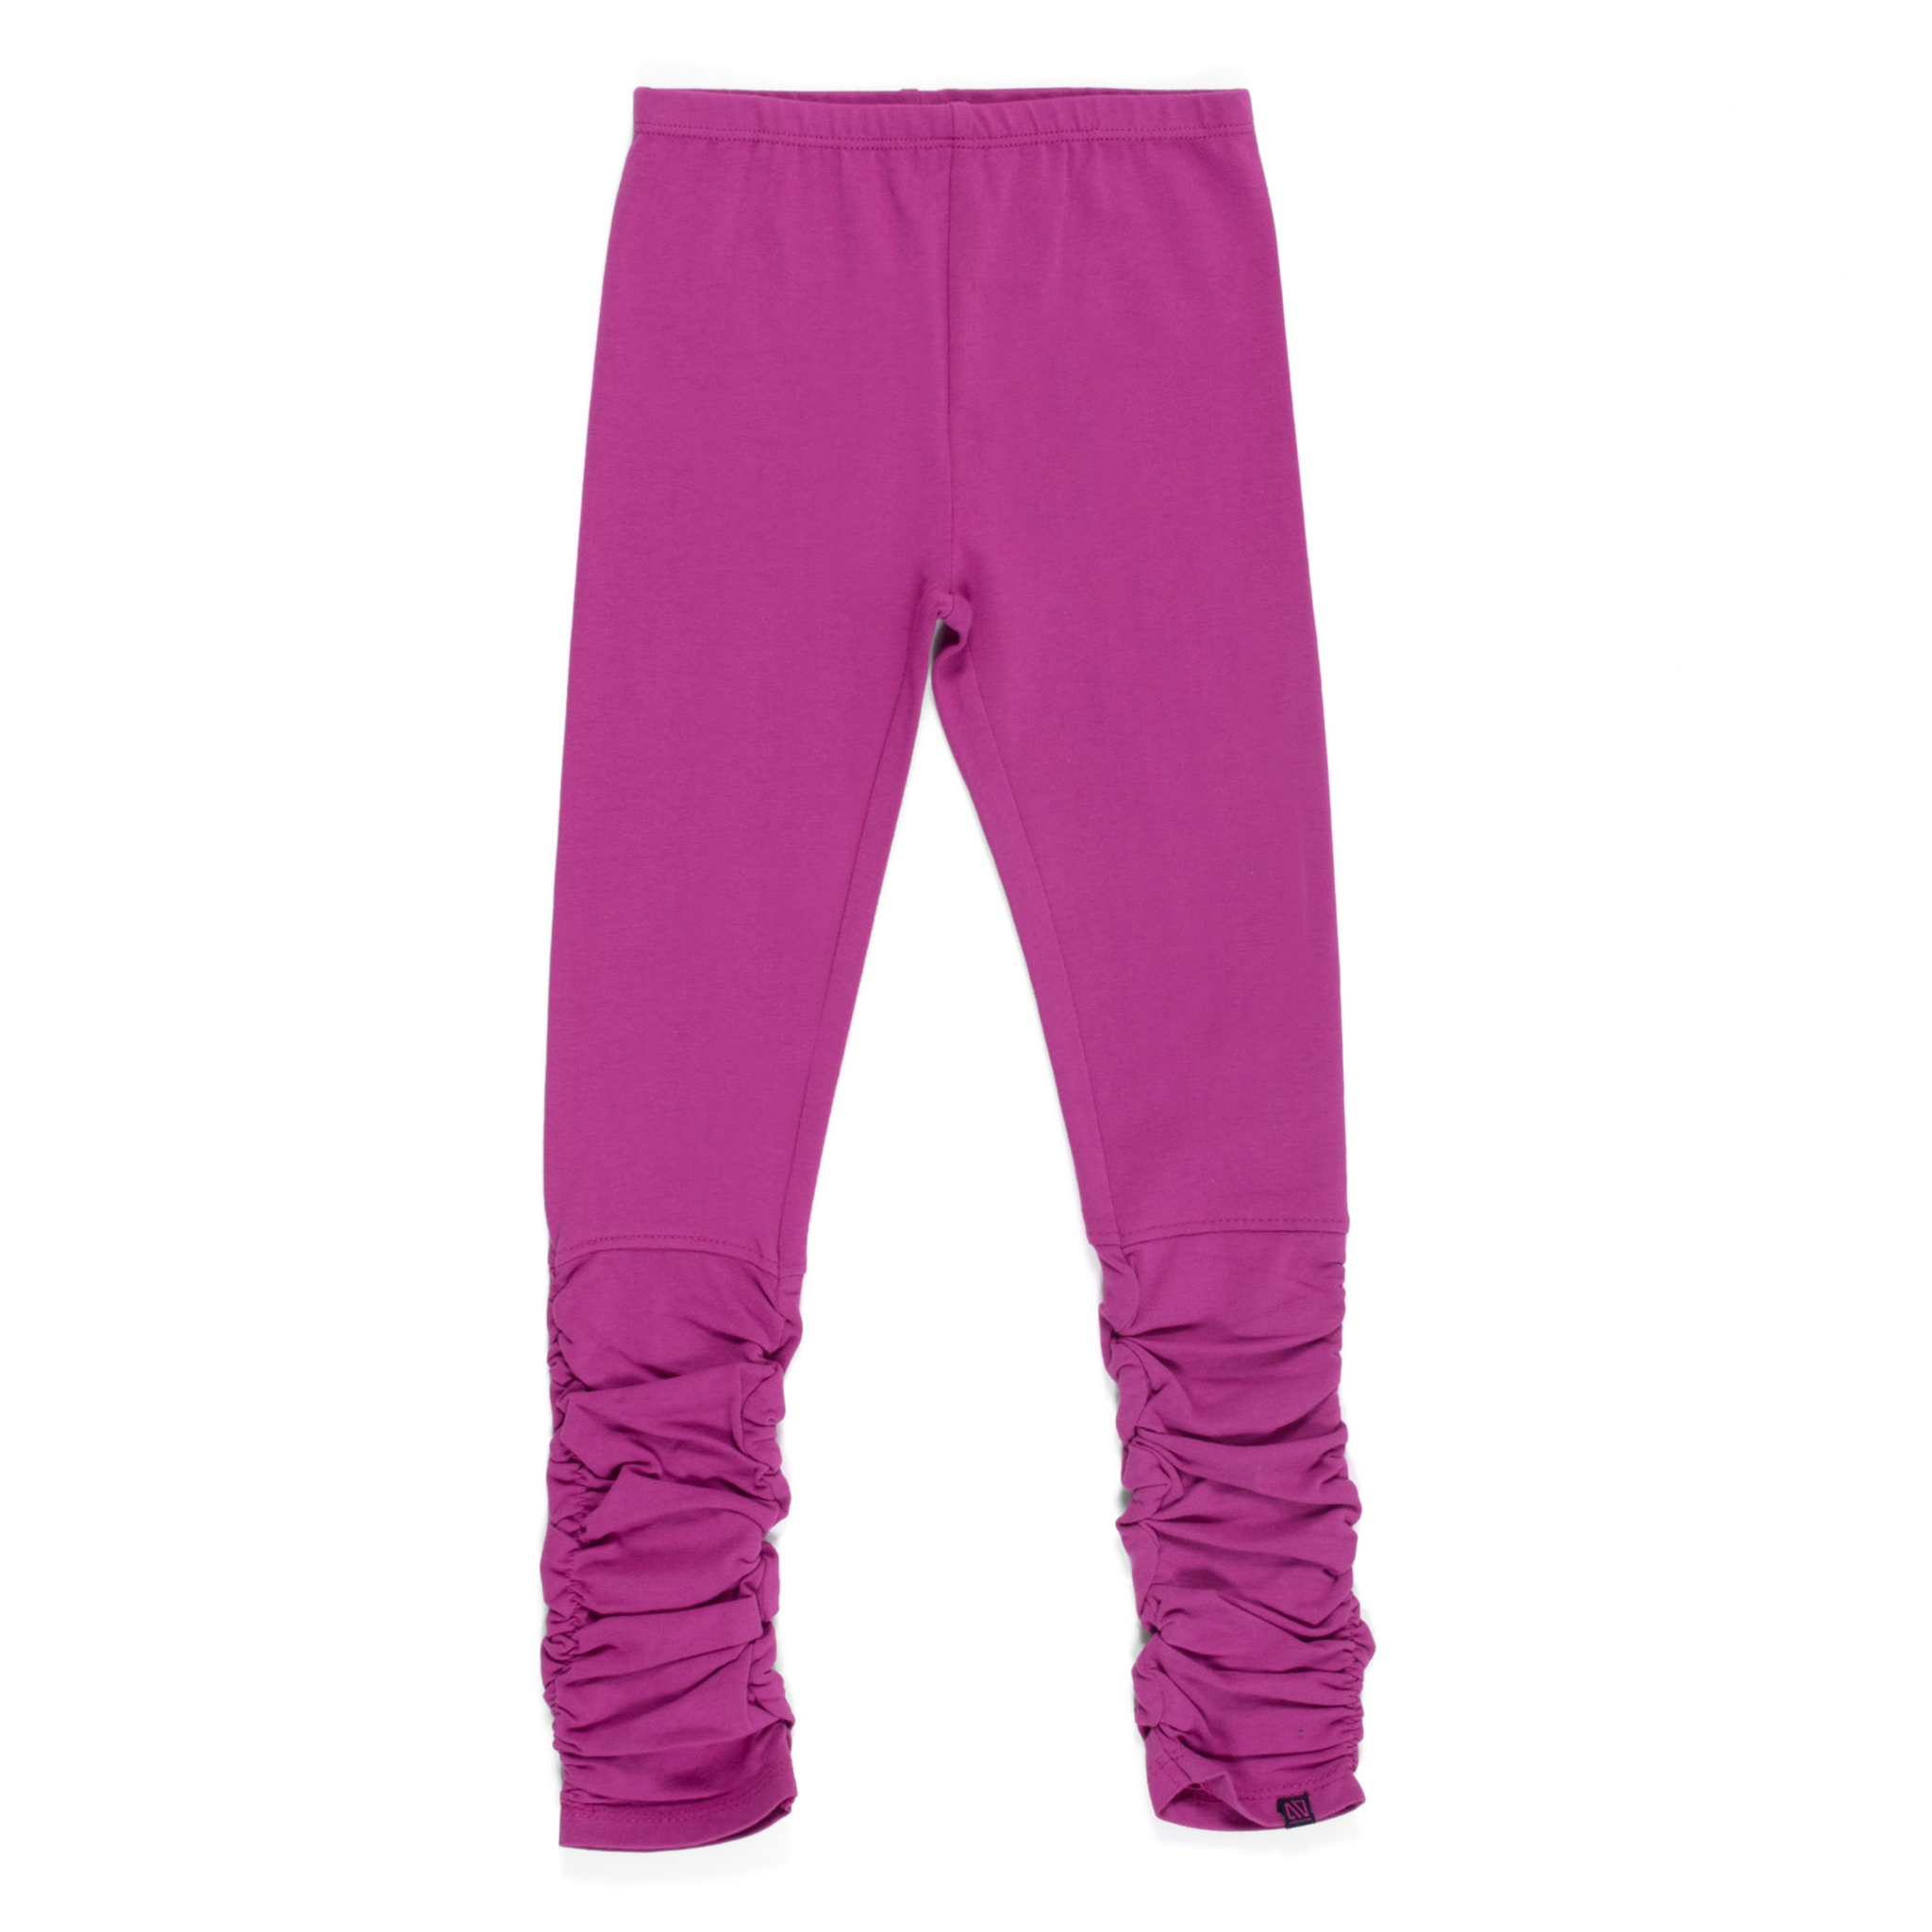 Leggings - Fuchsia - Girls